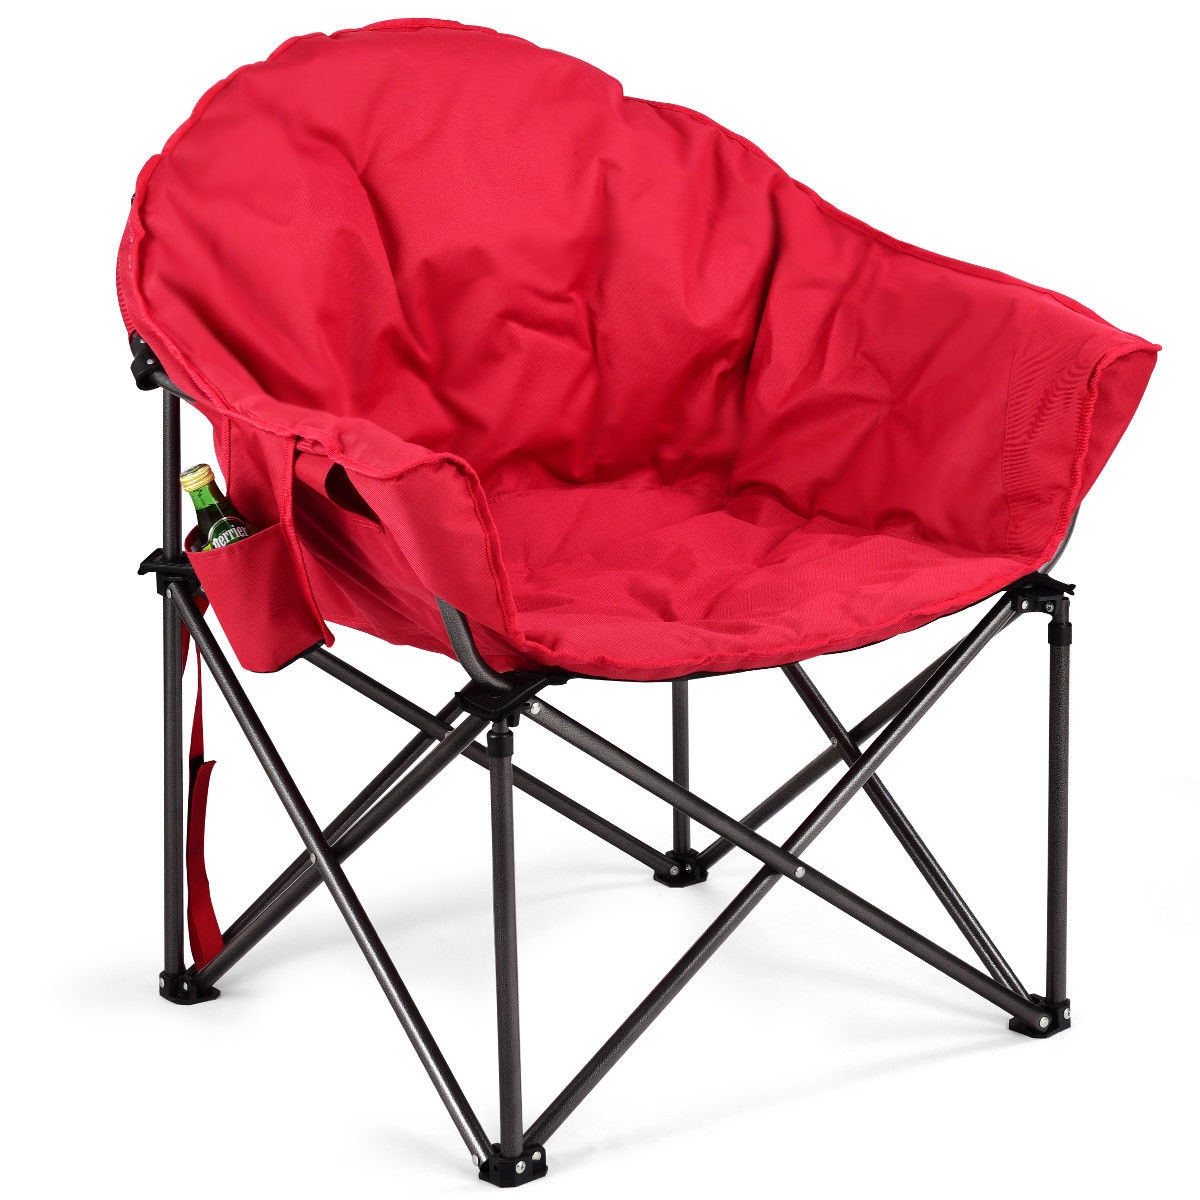 Oversized Folding Camping Moon Chair with Cup Holder